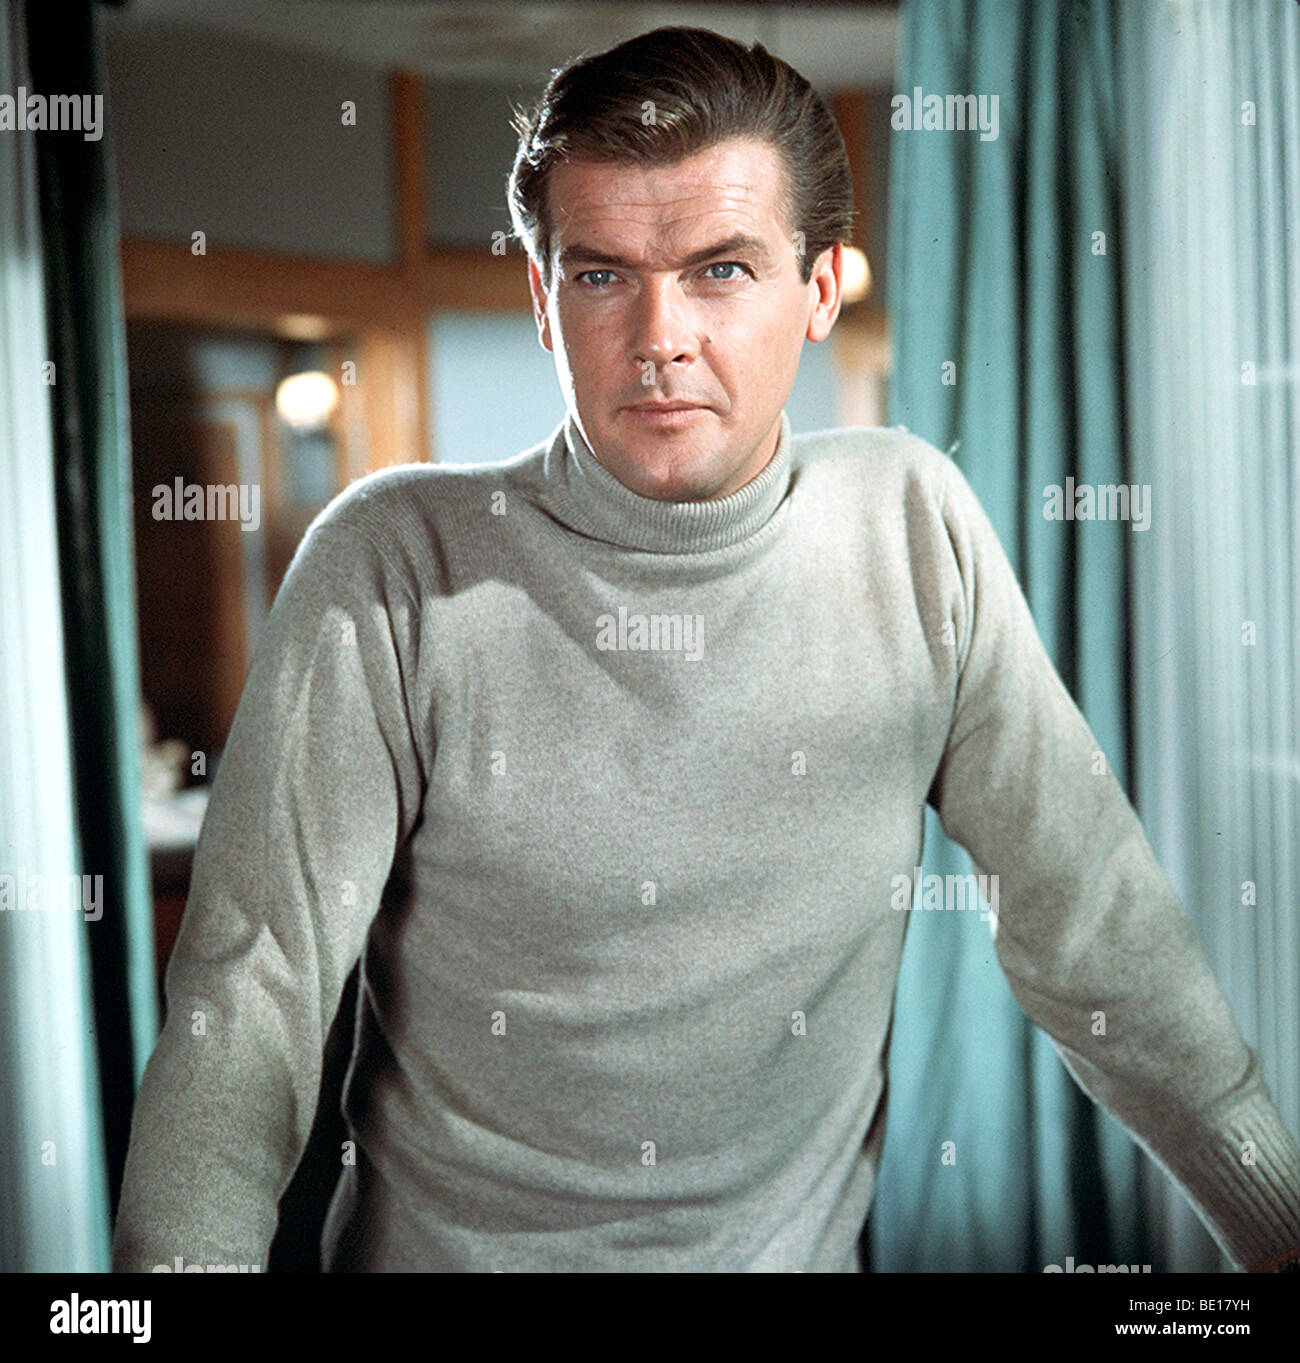 THE SAINT - UK TV series (1960-69) with Roger Moore as Simon Templar - Stock Image